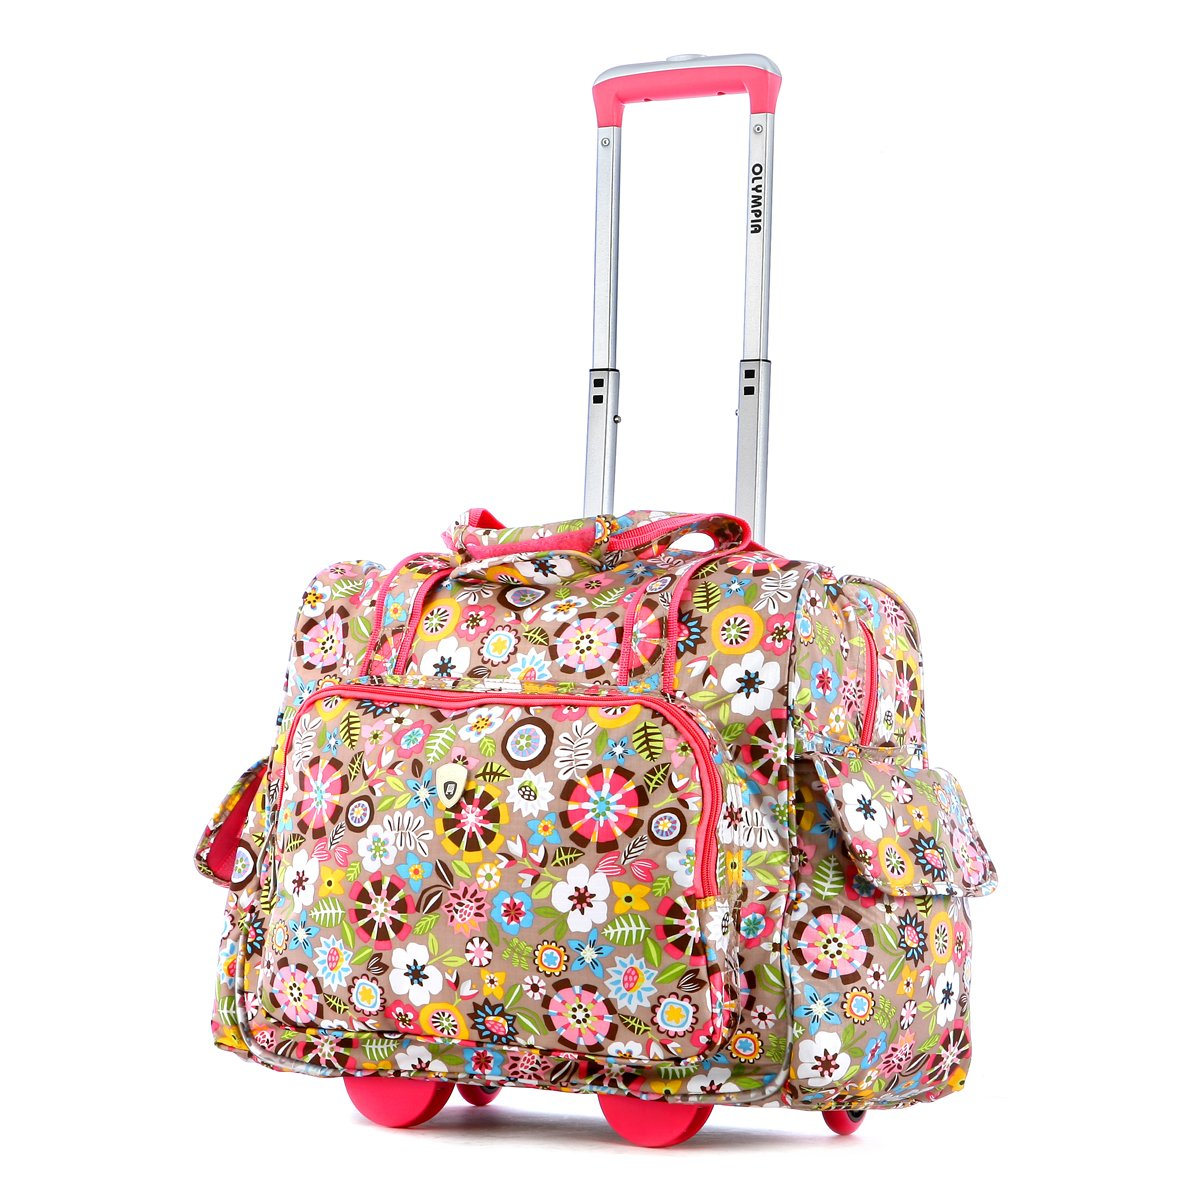 Olympia Deluxe Fashion Rolling Overnighter, Tulip, One Size by Olympia